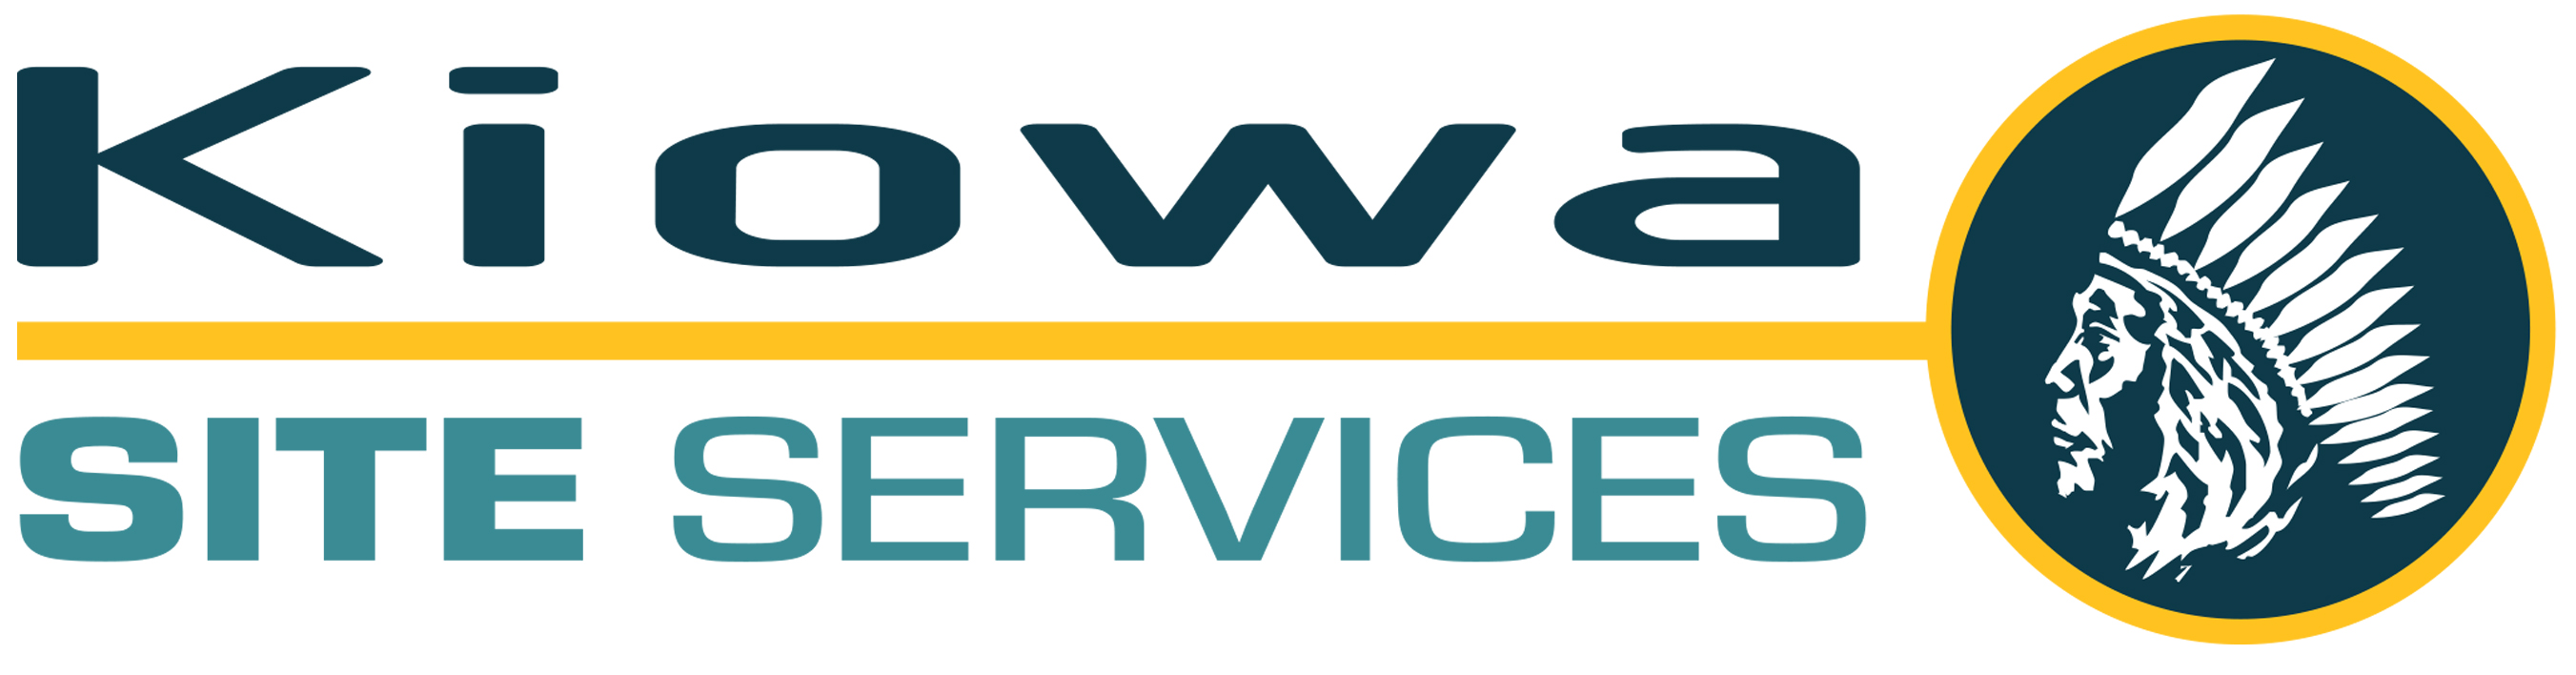 Kiowa Site Services